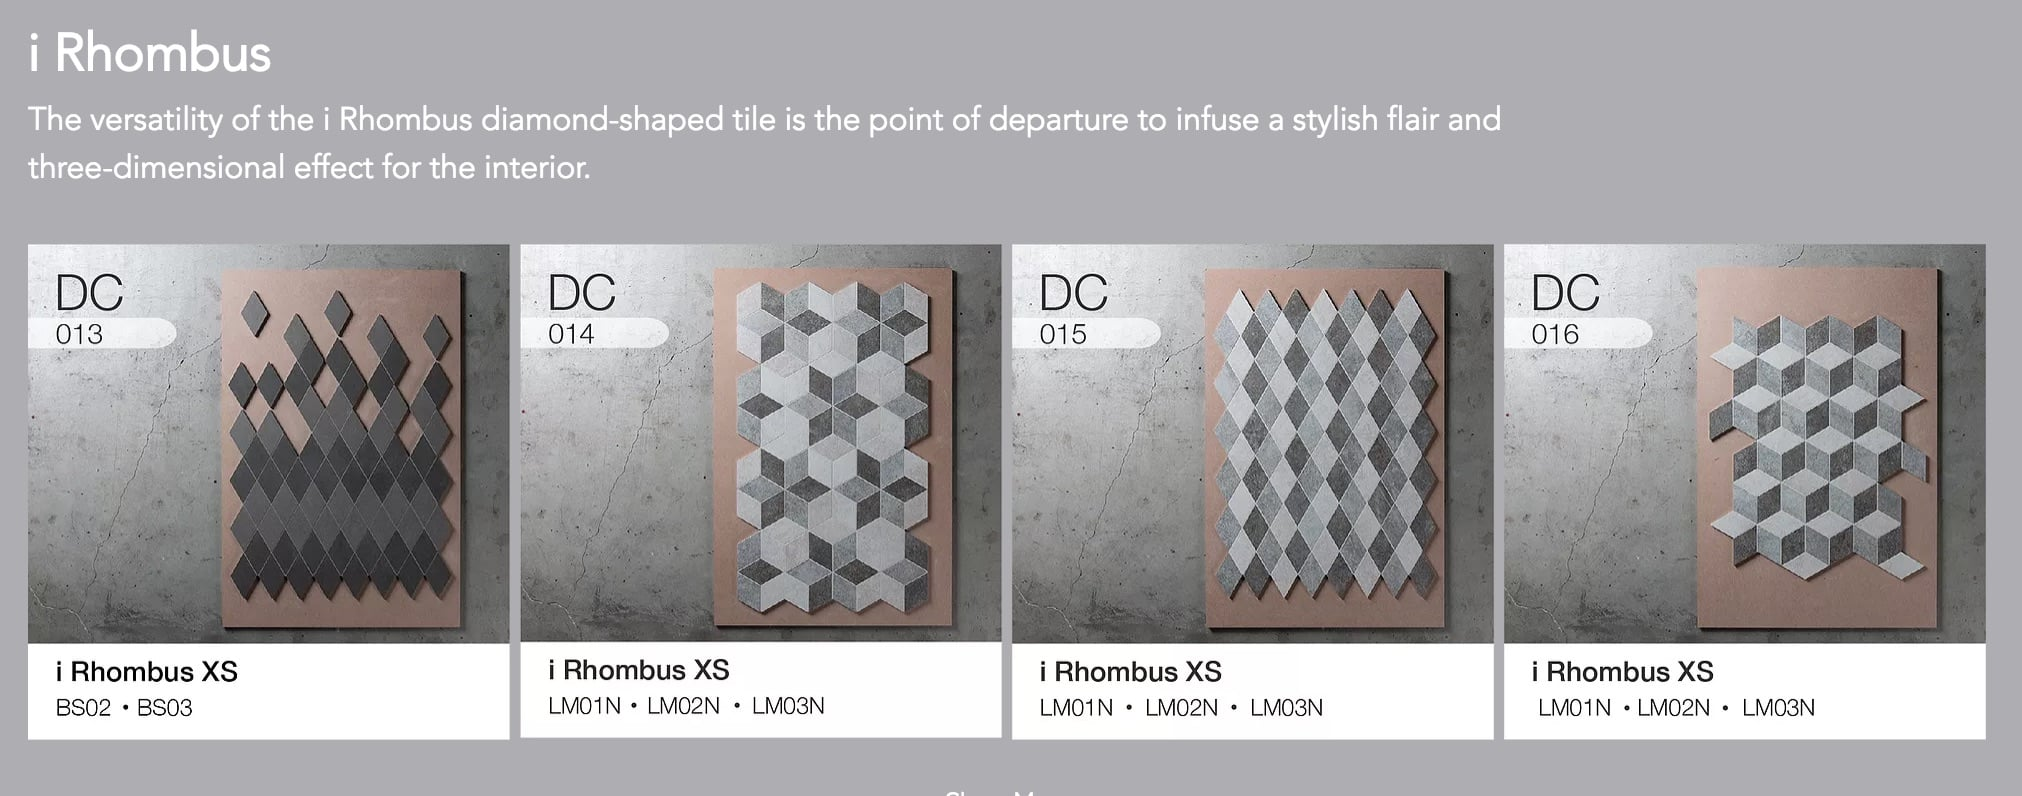 Rhombus tile design